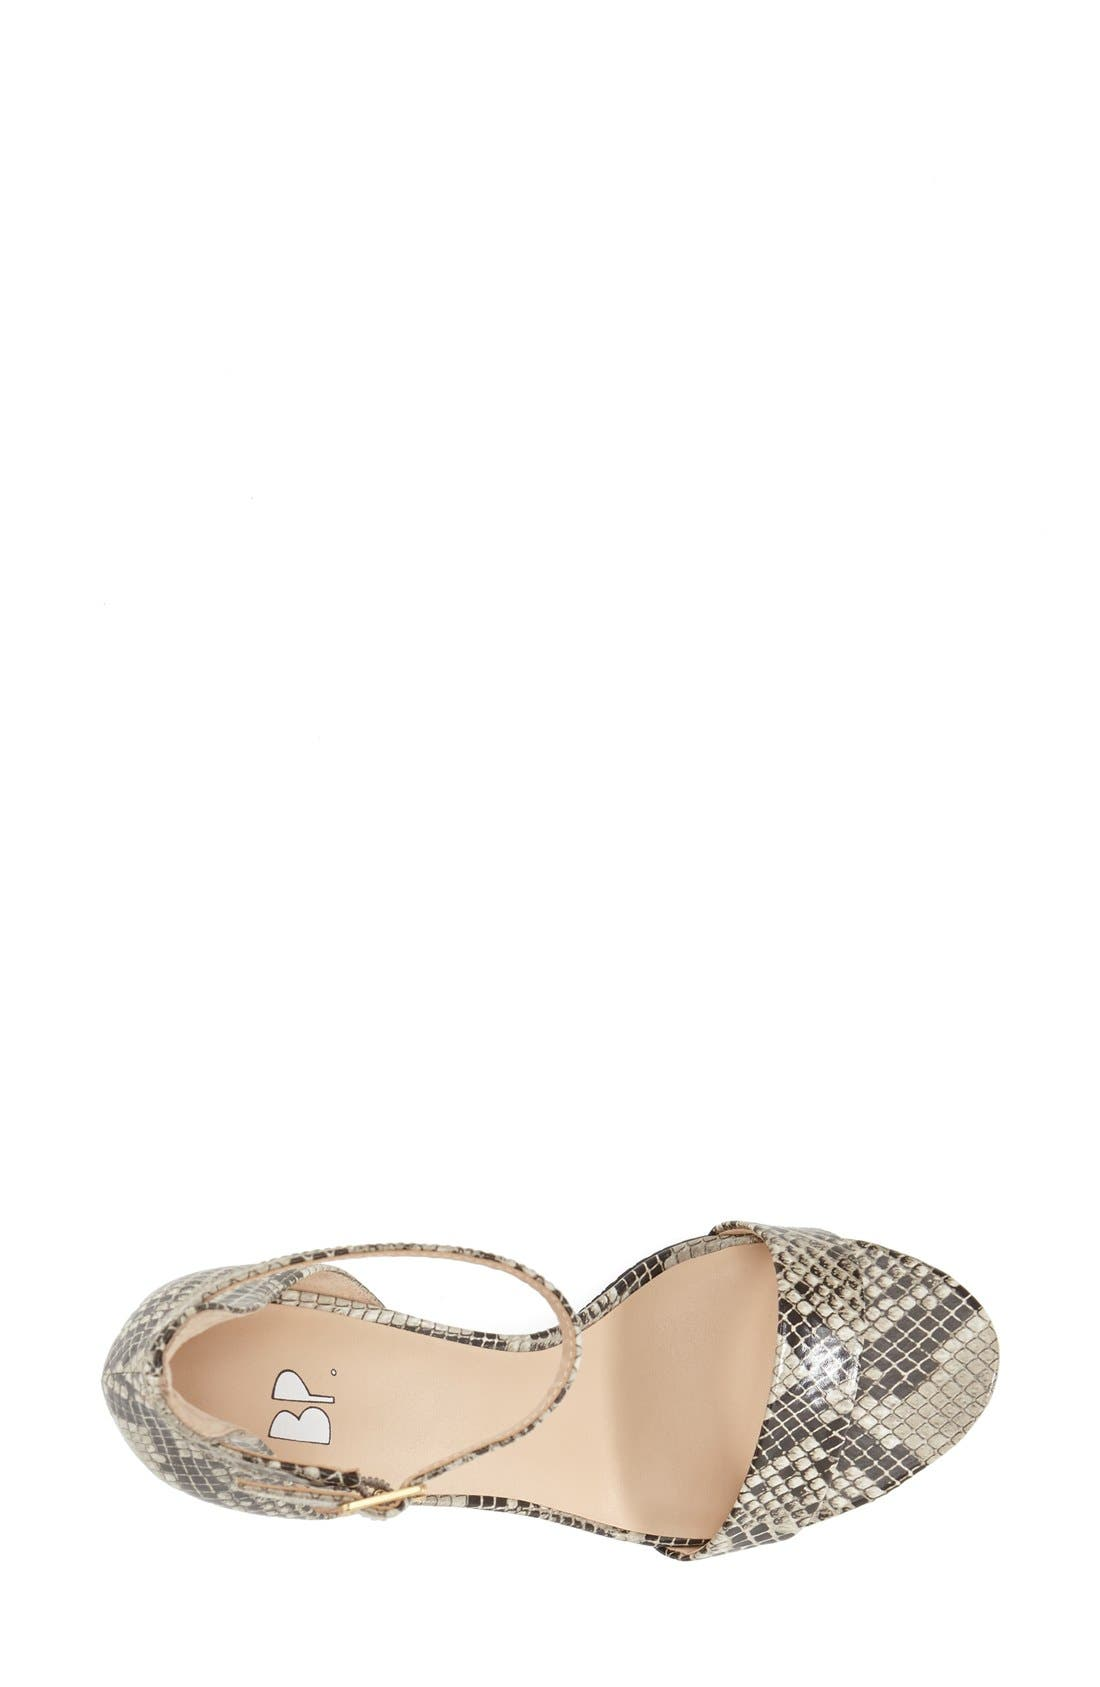 'Luminate' Open Toe Dress Sandal,                             Alternate thumbnail 162, color,